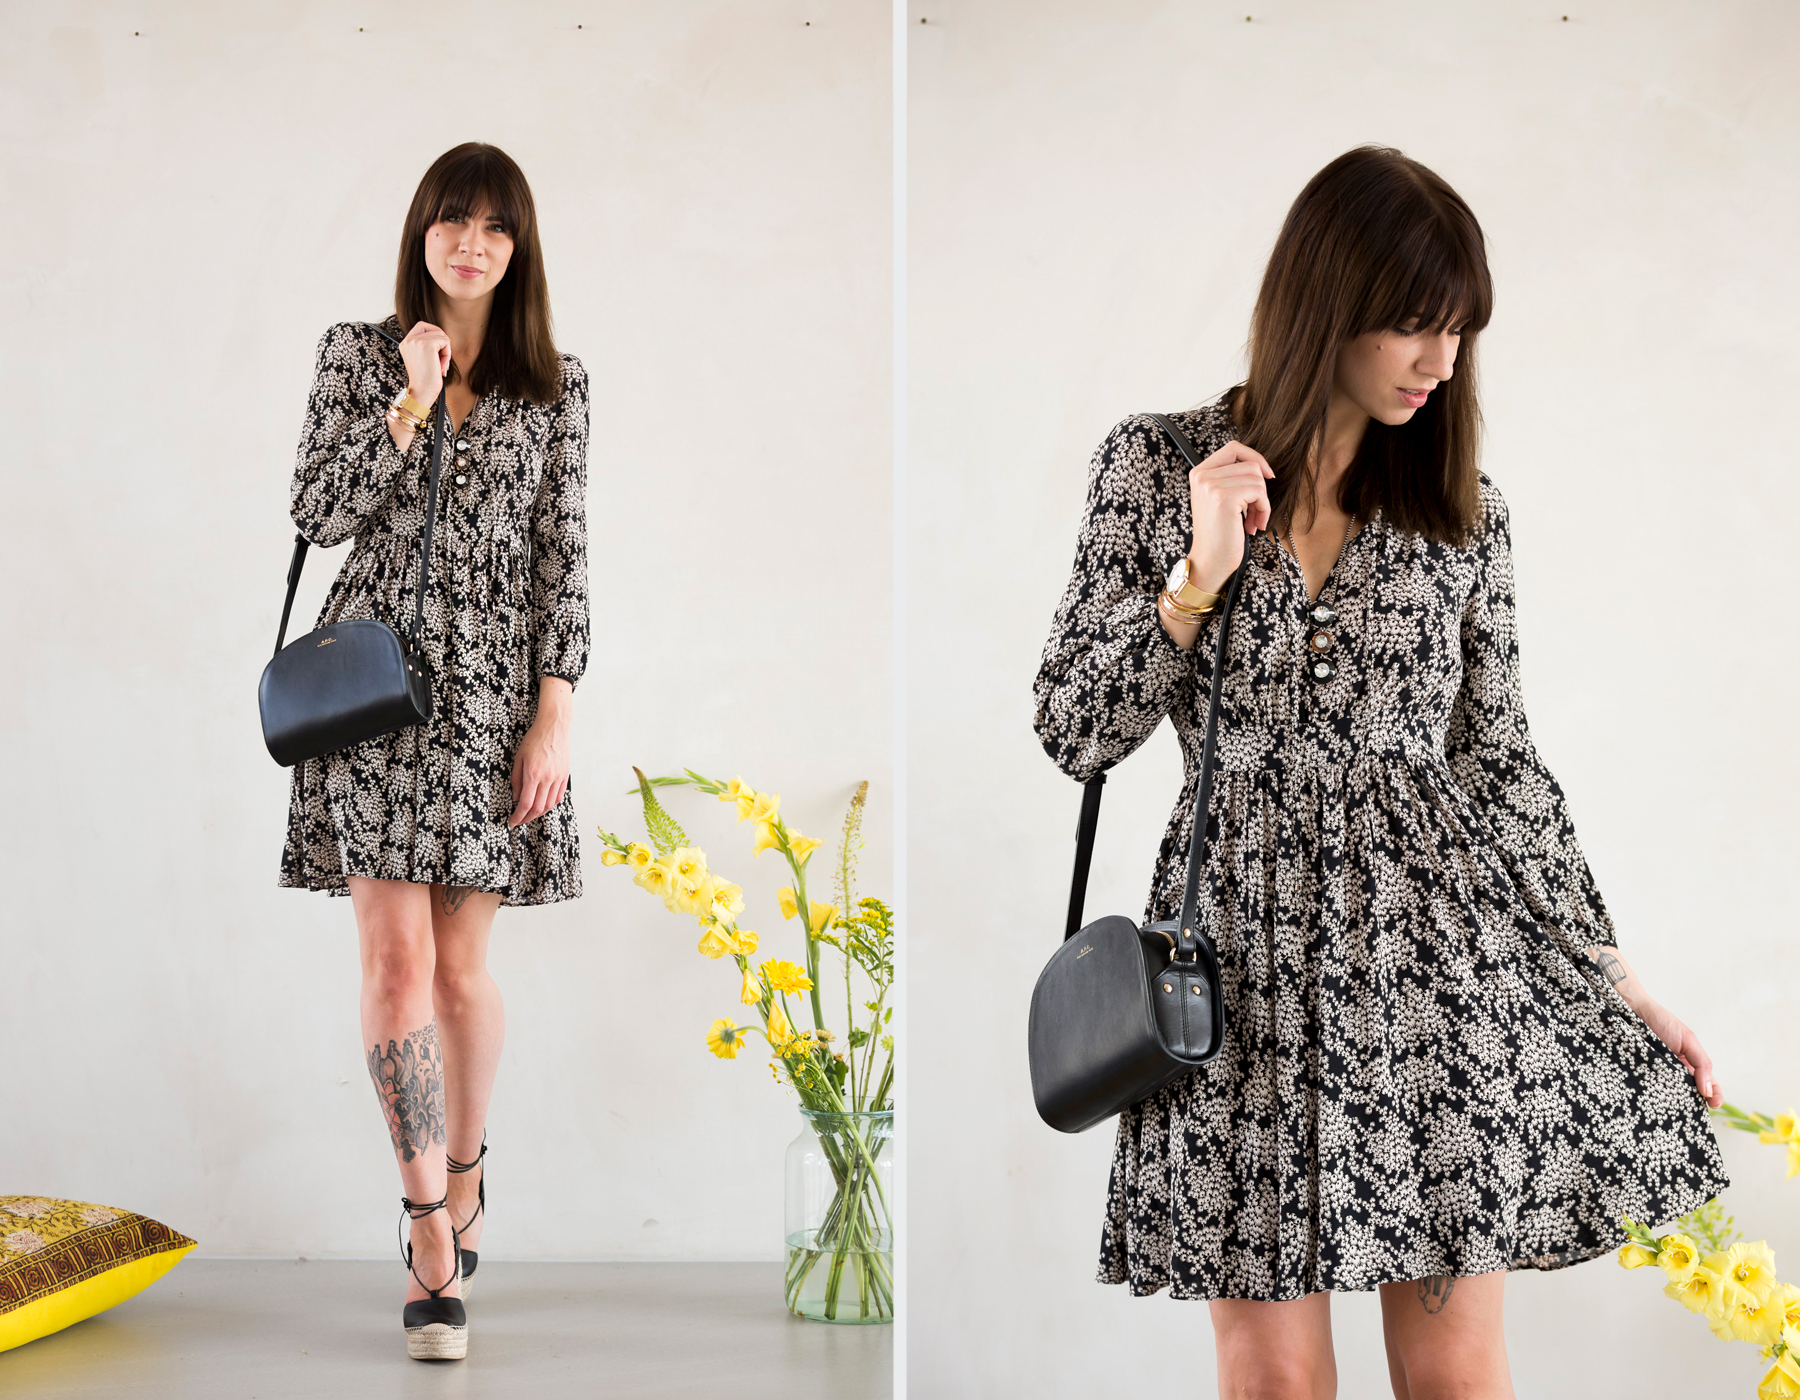 max&co maxandco summer dress floral print black white minimal romantic cute online shop dresses shopping a.p.c. halfmoon bag luxury girl bangs brunette francaise parisienne saint laurent espadrilles ootd look fashionblogger ricarda schernus cats & dogs 6